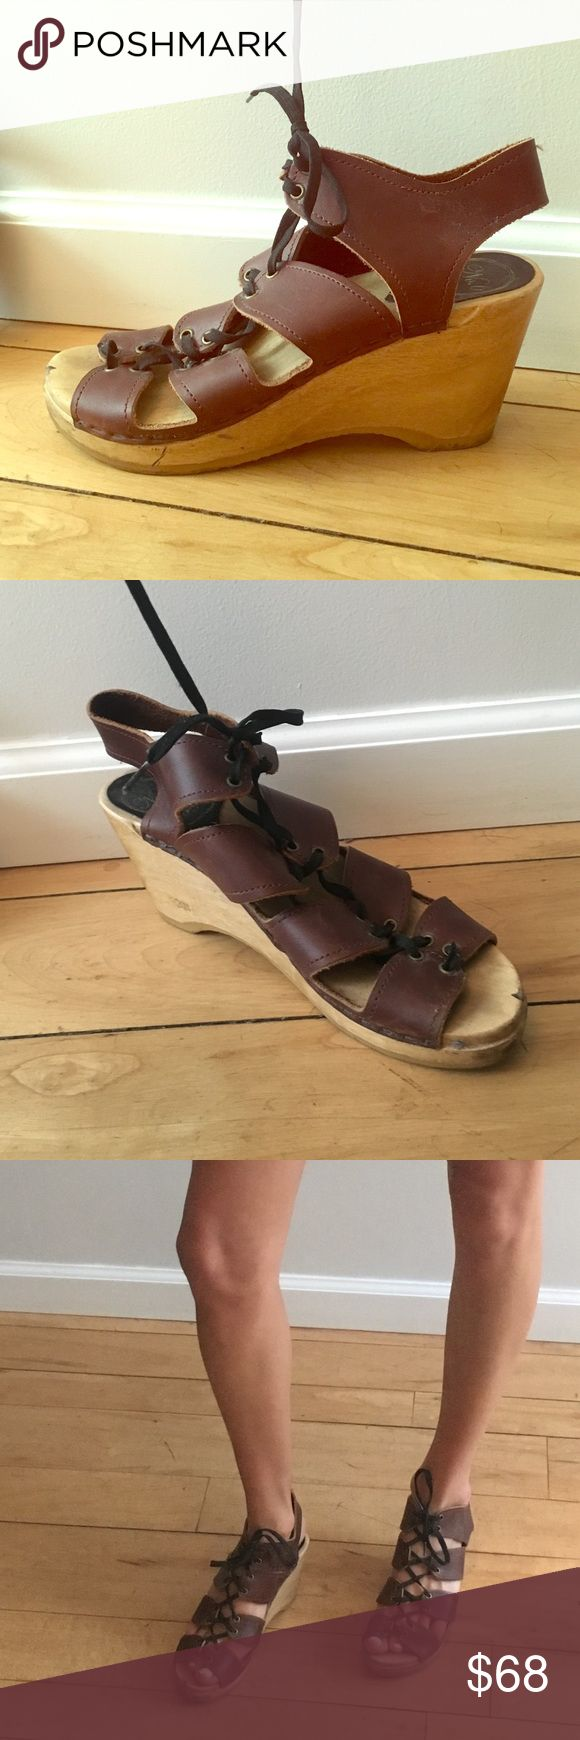 No. 6 Boutique brand lace up wedge clogs 8 Boutique NYC brand No. 6 wedge lace-up clogs in size 8. Super cute and comfortable, about 3 inch heel . Slightly scuffed up but in otherwise great condition. #no6 #number6 #8 #wedge #clog #laceupheel #laceup #heel No. 6 Shoes Wedges